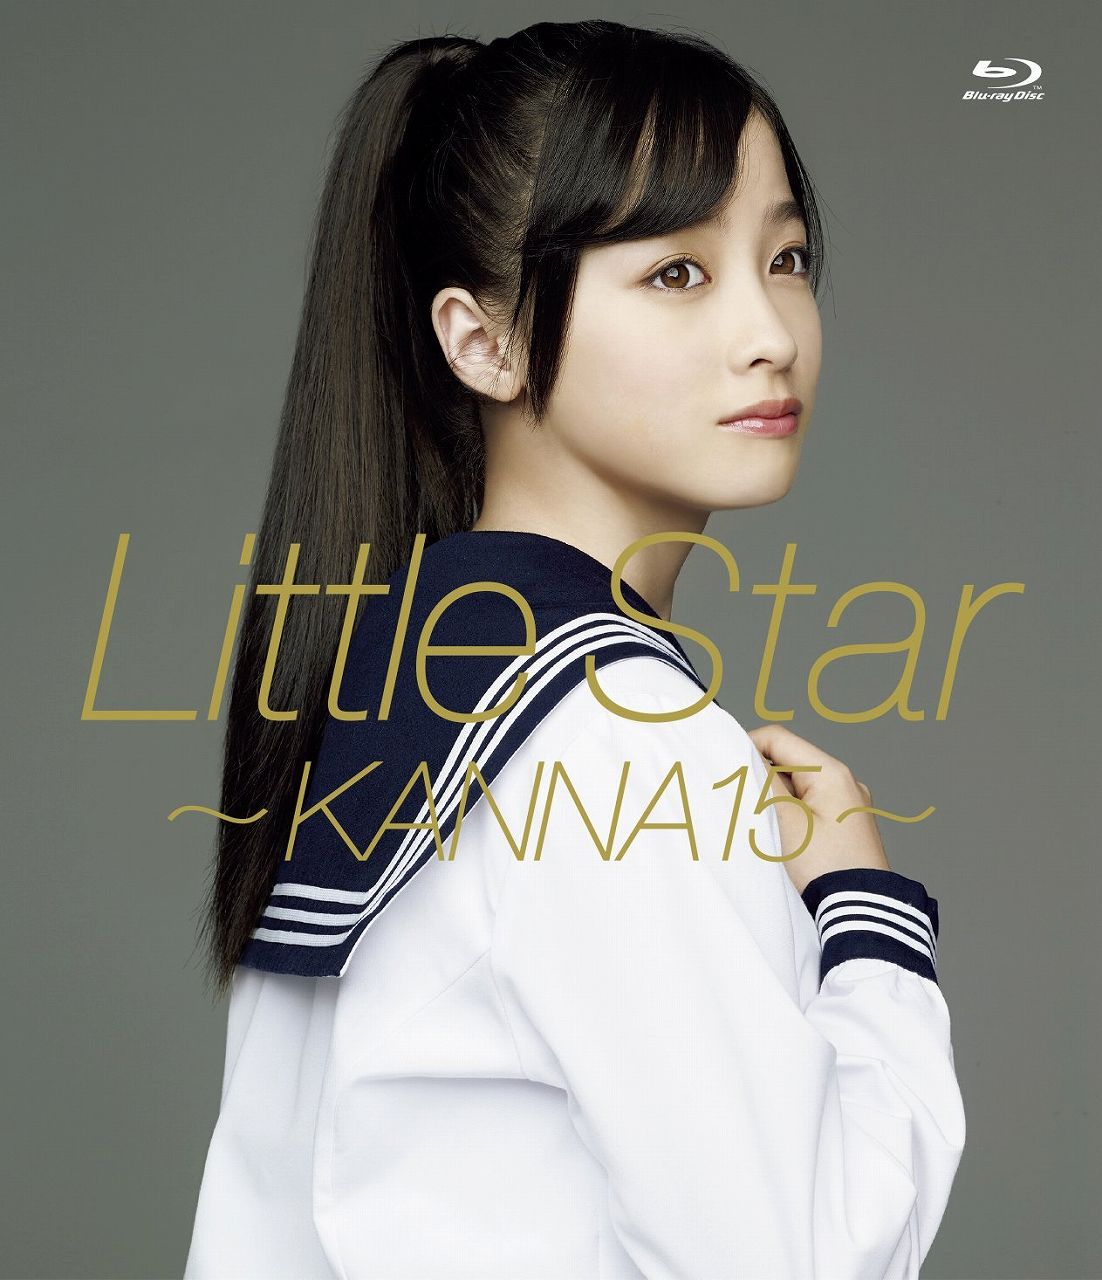 橋本環奈のBlu-ray「Little Star ~KANNA15~」